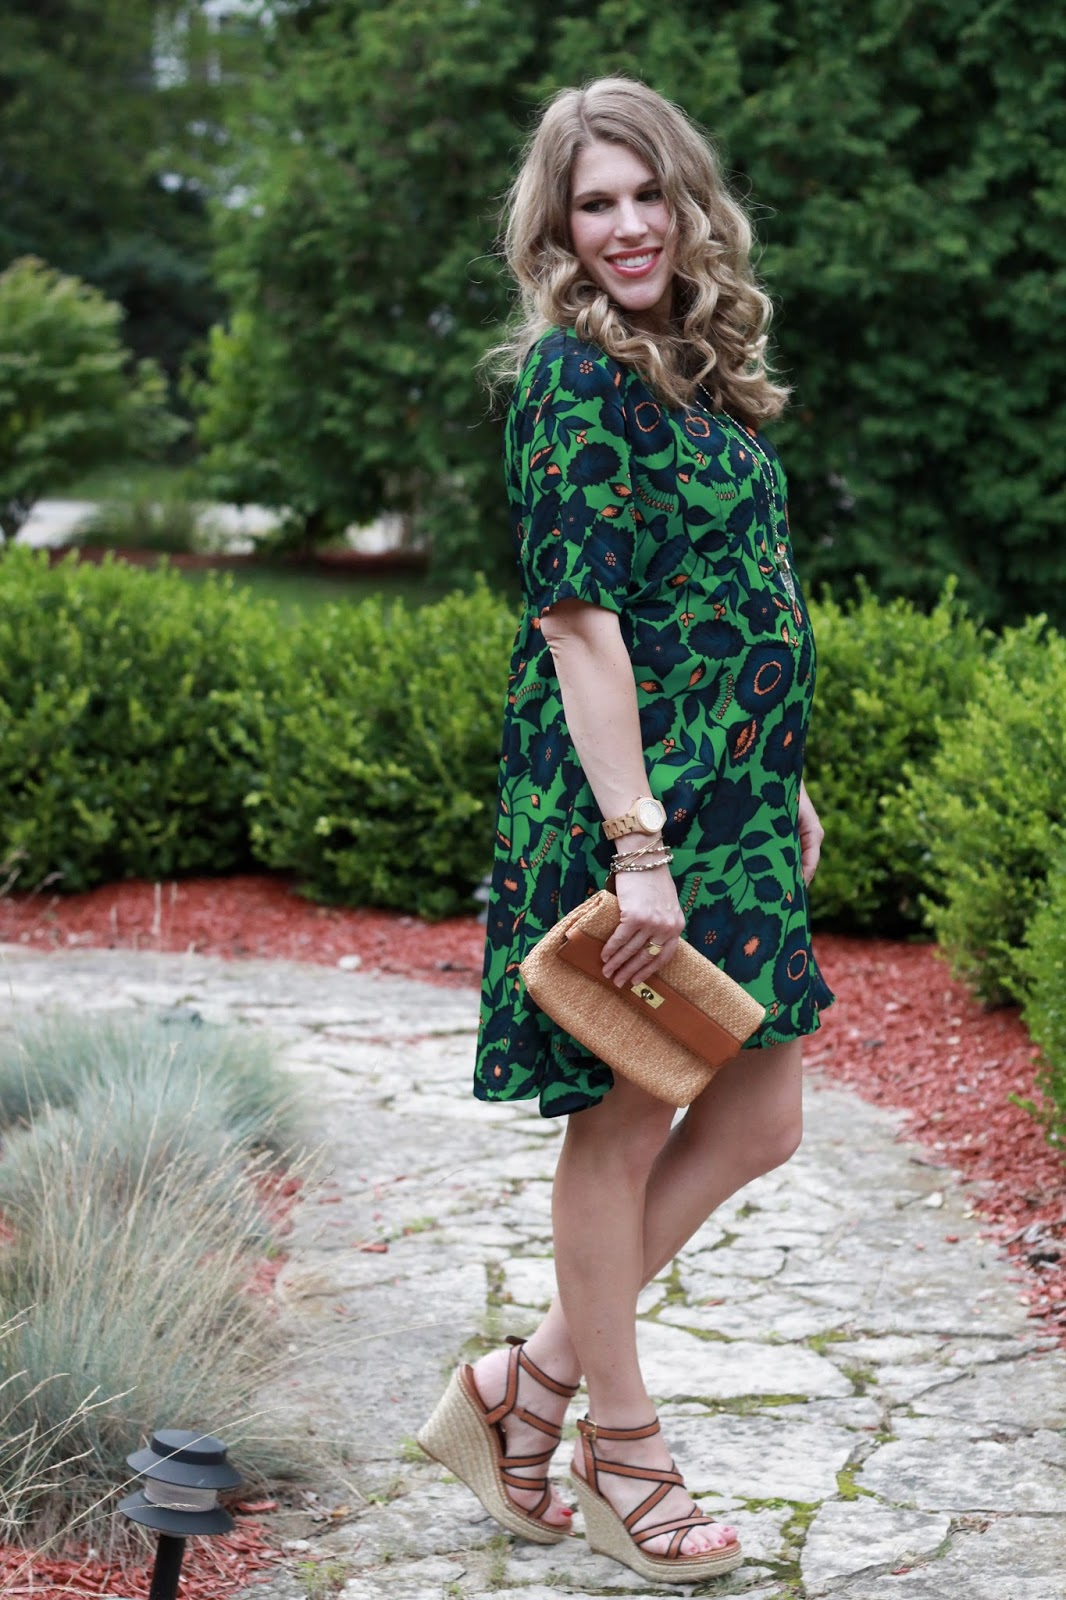 SheIn green floral dress, wedges, straw clutch, second trimester summer maternity outfit